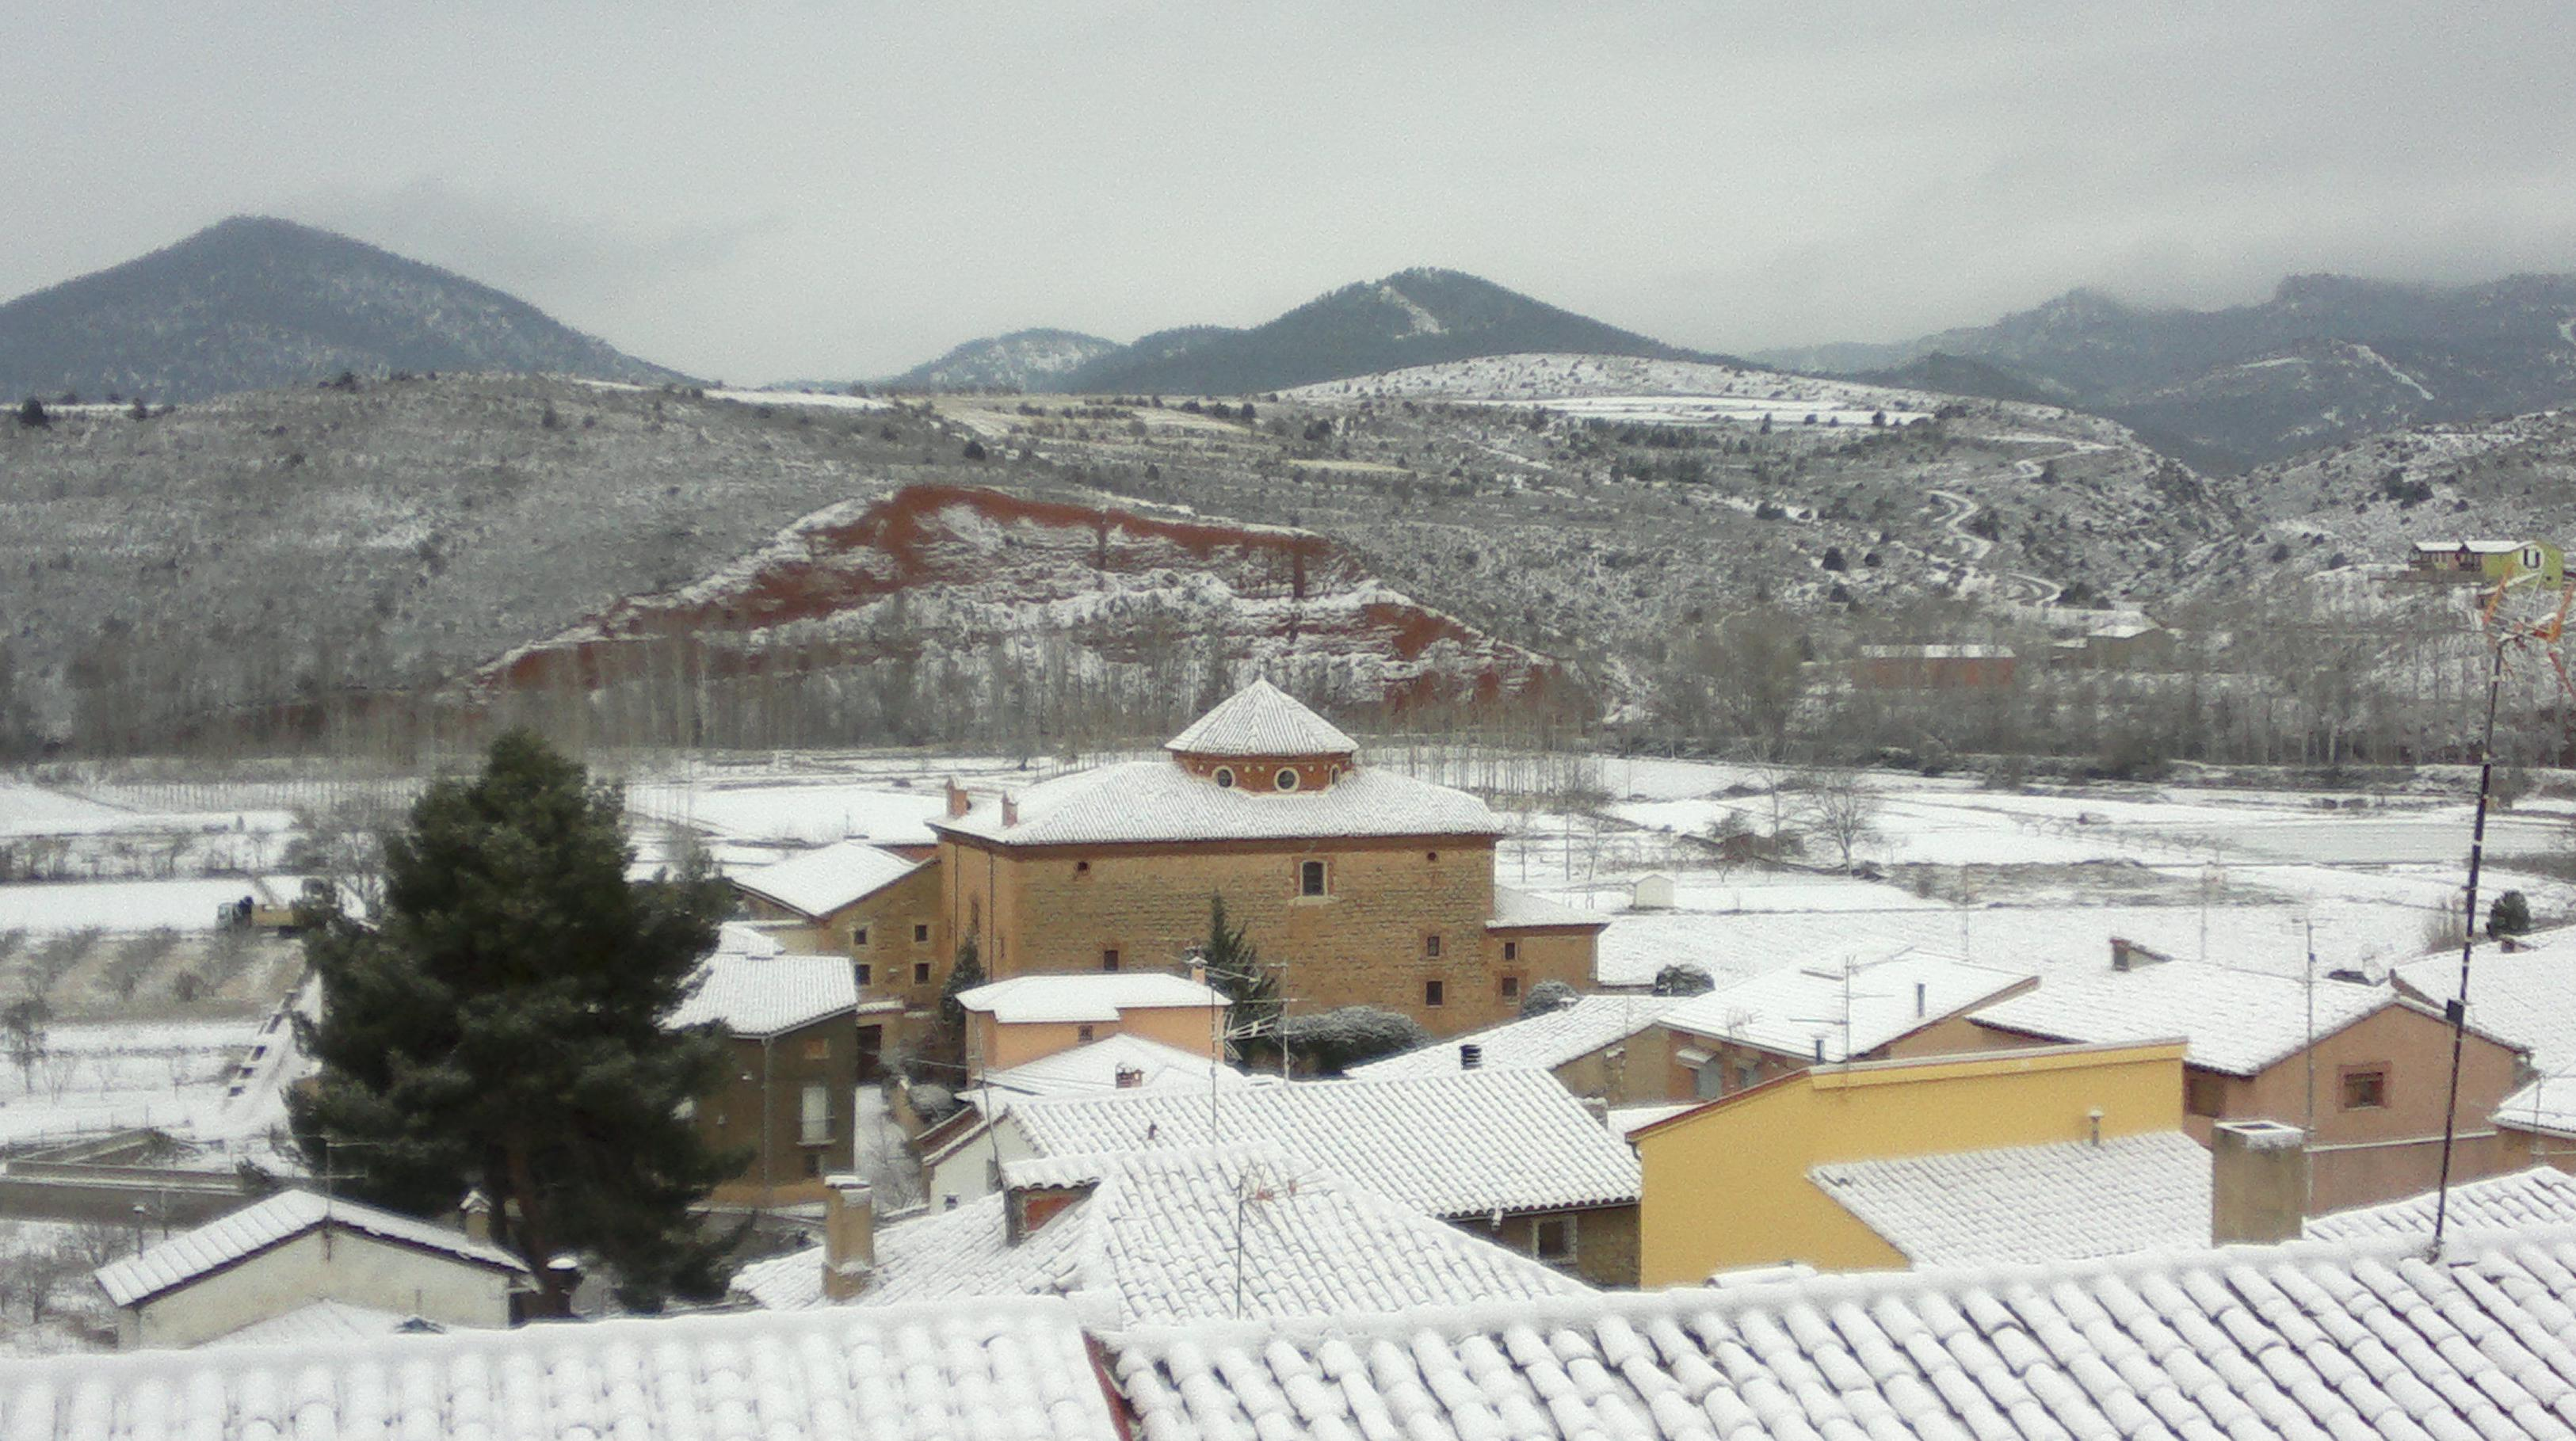 Gea de Albarracín nevado